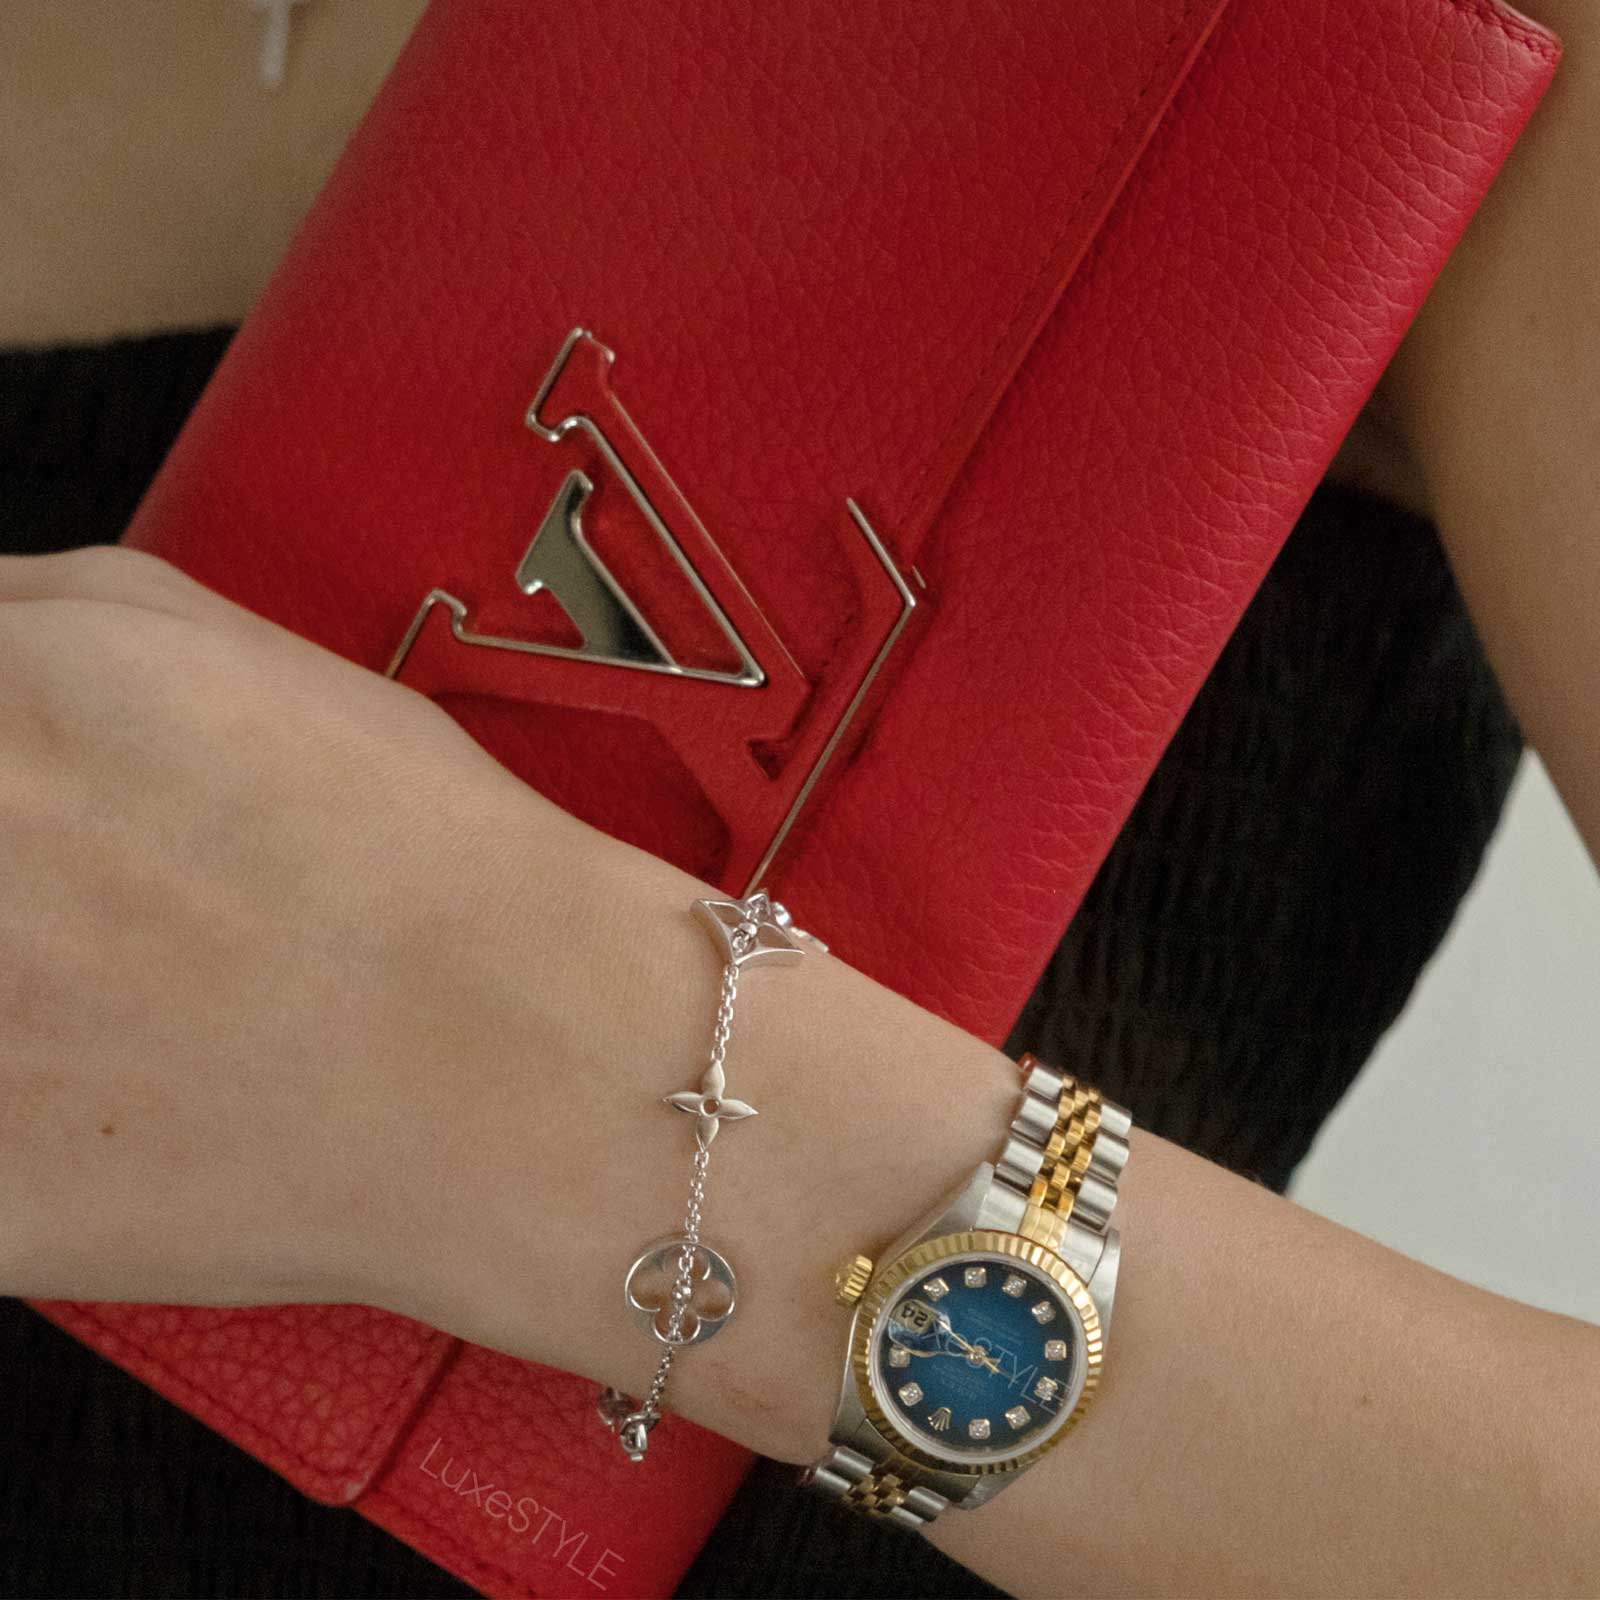 Maxi-Cash-SG_Preloved-Branded-Jewellery,-Bags,-Watches